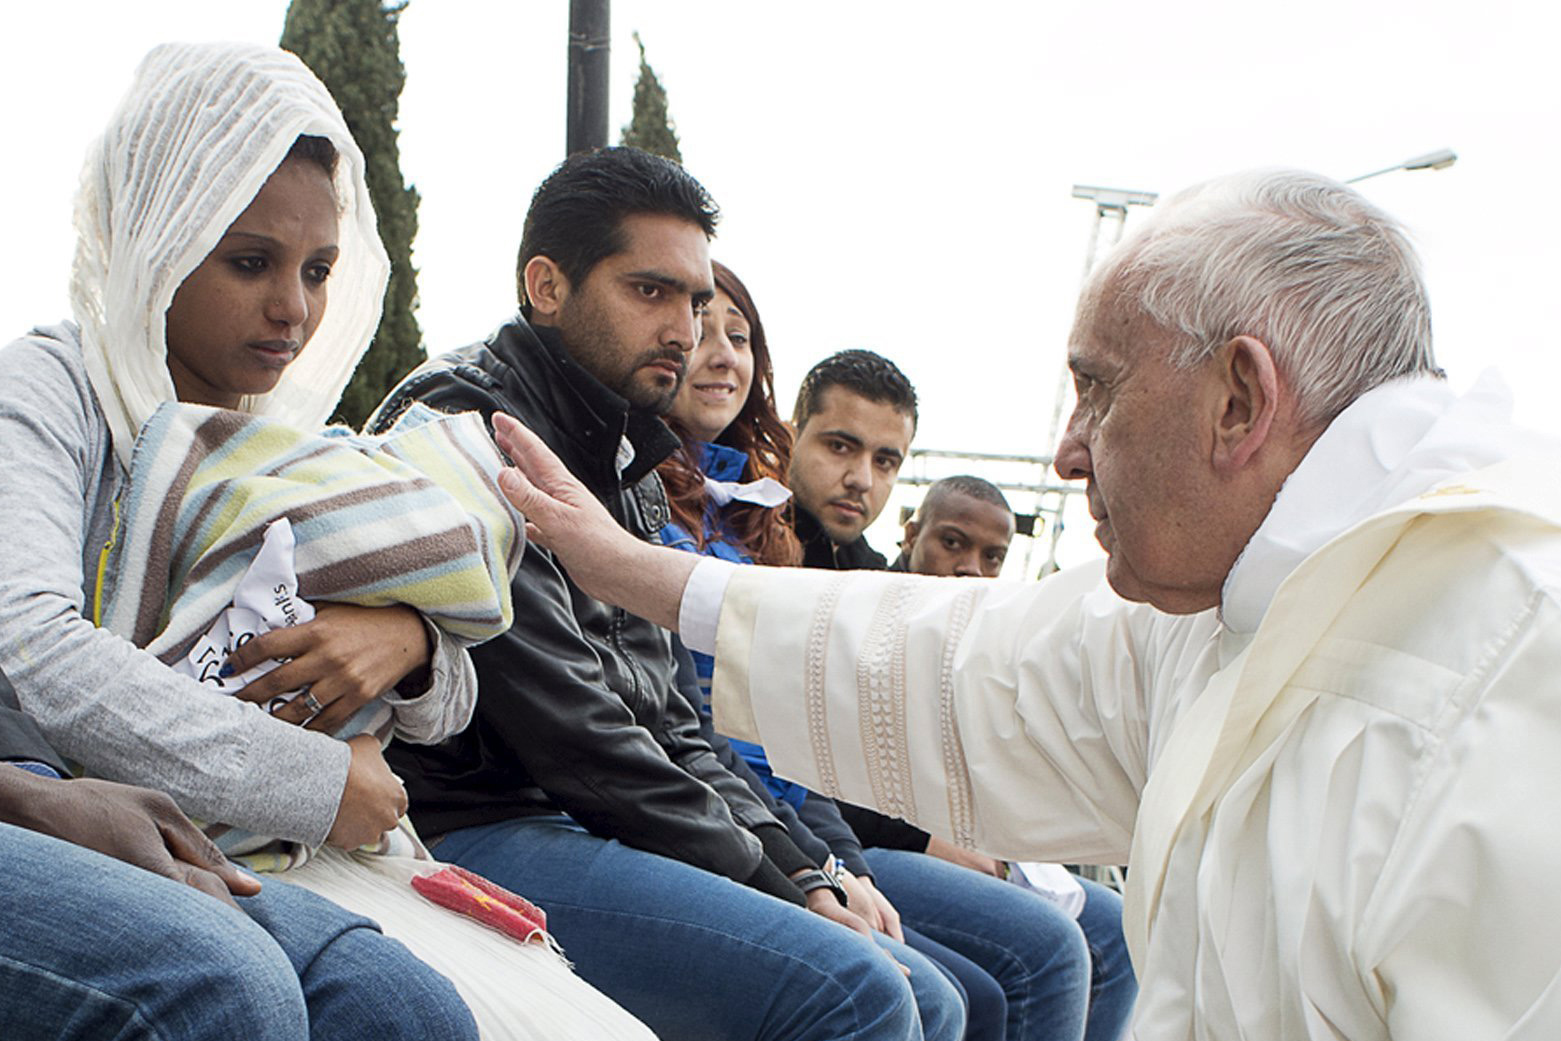 Pope Francis blesses a baby during the foot-washing ritual at the Castelnuovo di Porto refugees center near Rome, Italy, on March 24, 2016.